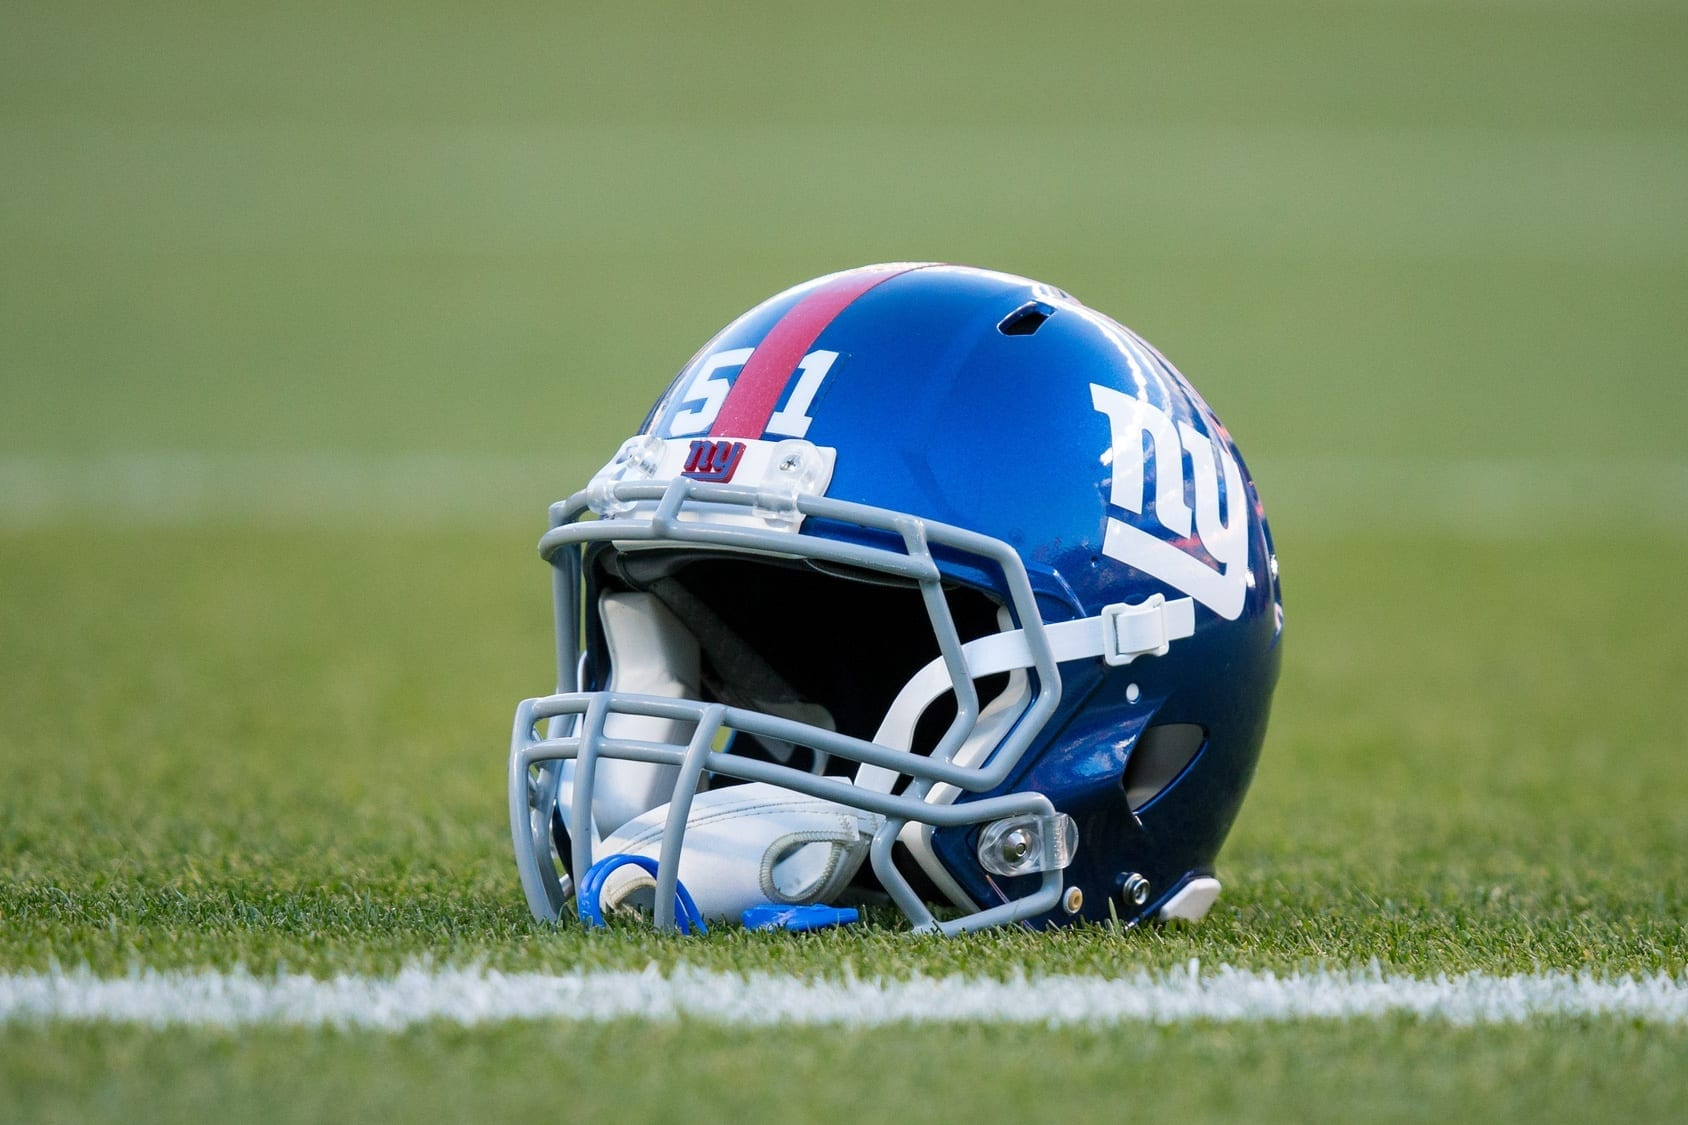 Giants-helmet-5